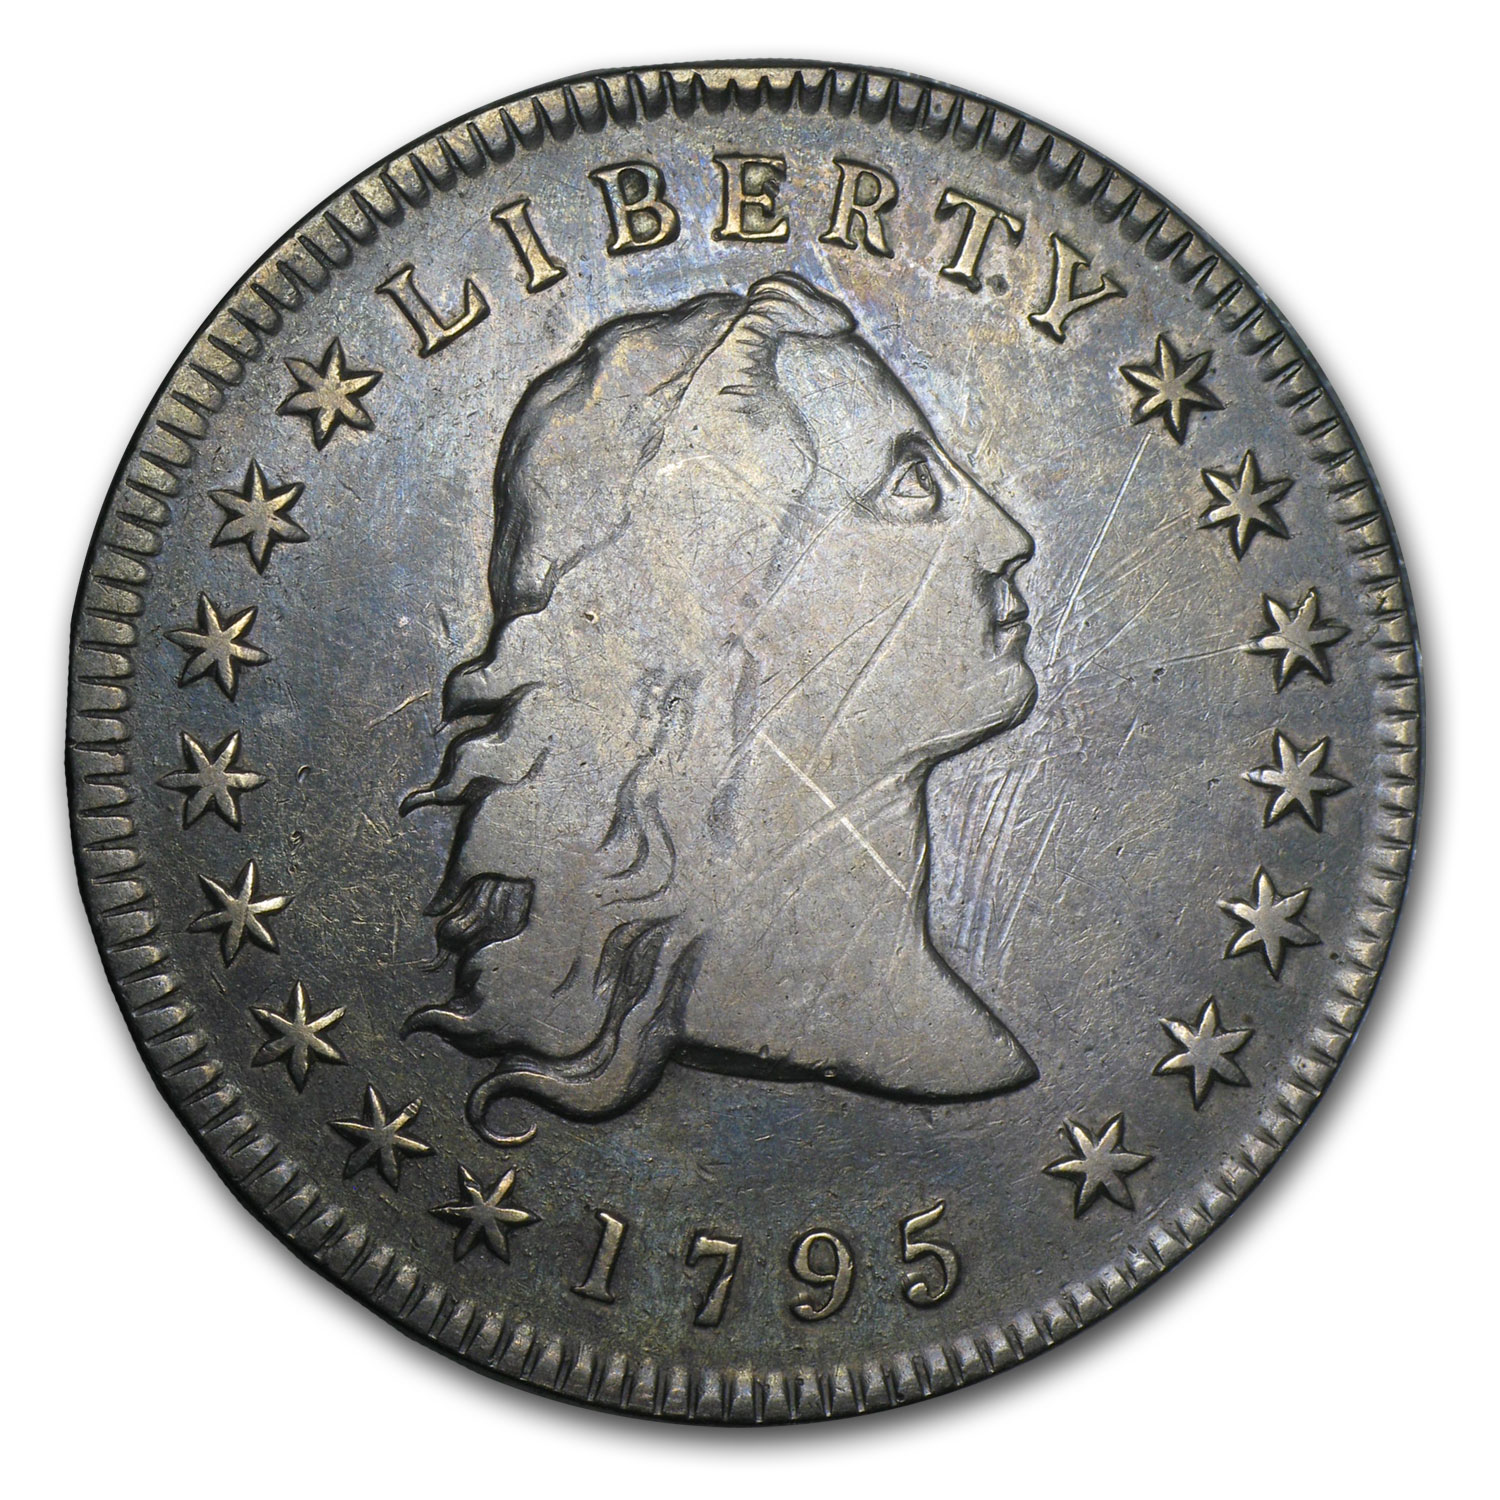 1795 Flowing Hair Dollar 3 Leaves VF Details (Scratched)